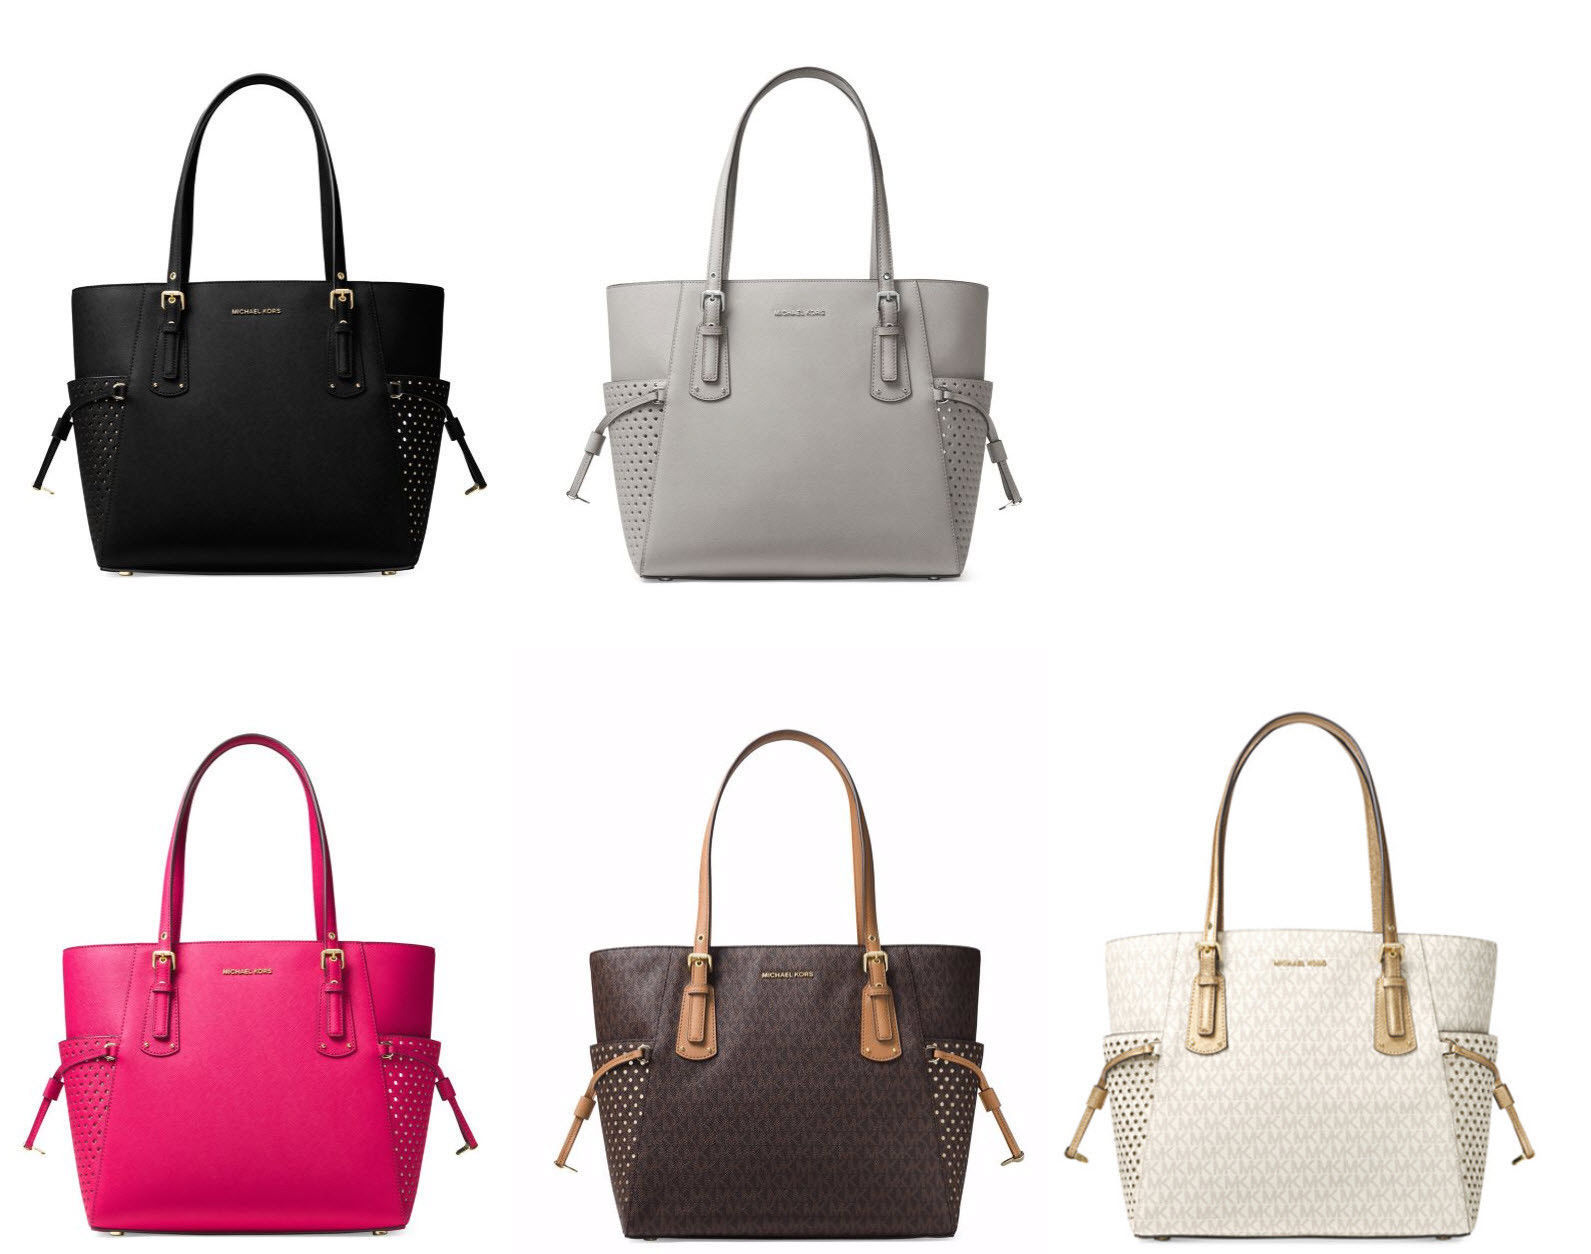 b8850a33a97a Michael Kors Voyager East West Tote and 50 similar items. 57